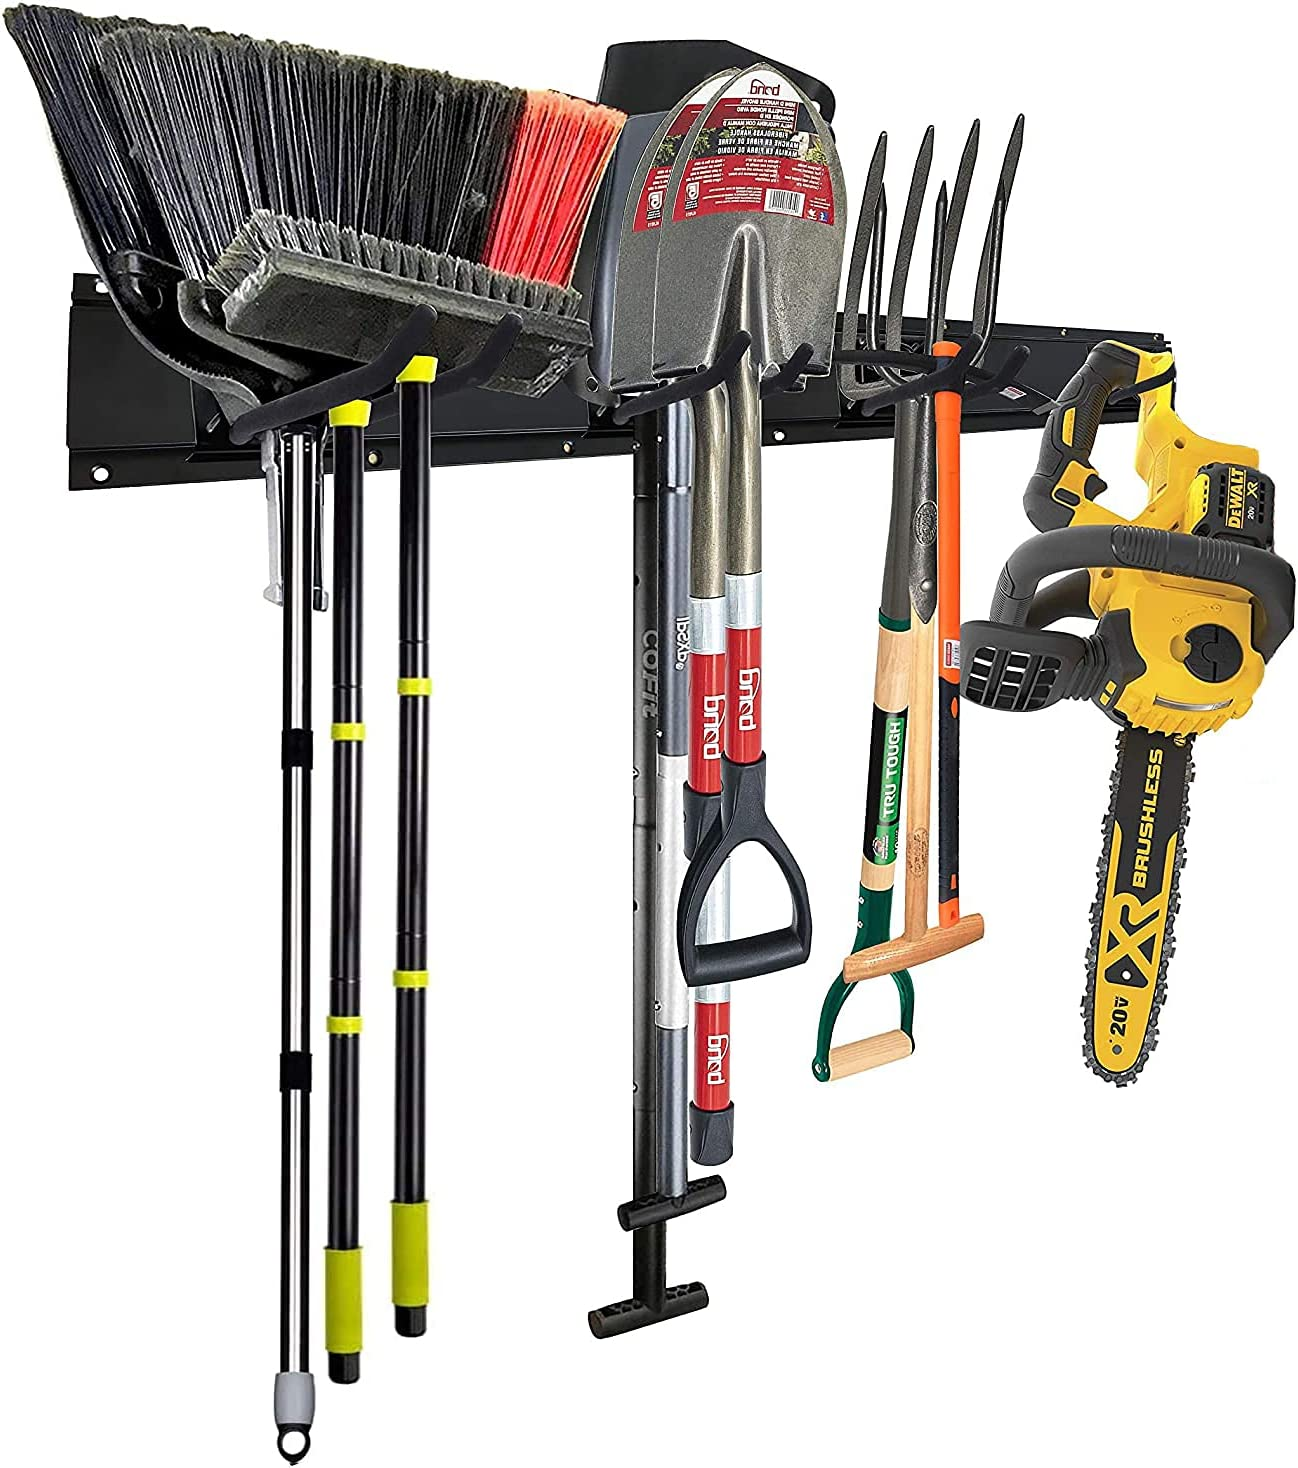 Garage Tool Organizers Storage Wall Mounted with 6 Removable Hooks and 2 Board, Super Heavy Duty Powder Coated Steel Garden Tool Hanger Rack for Bike, Chair, Broom, Mop, Rake Shovel & Tools